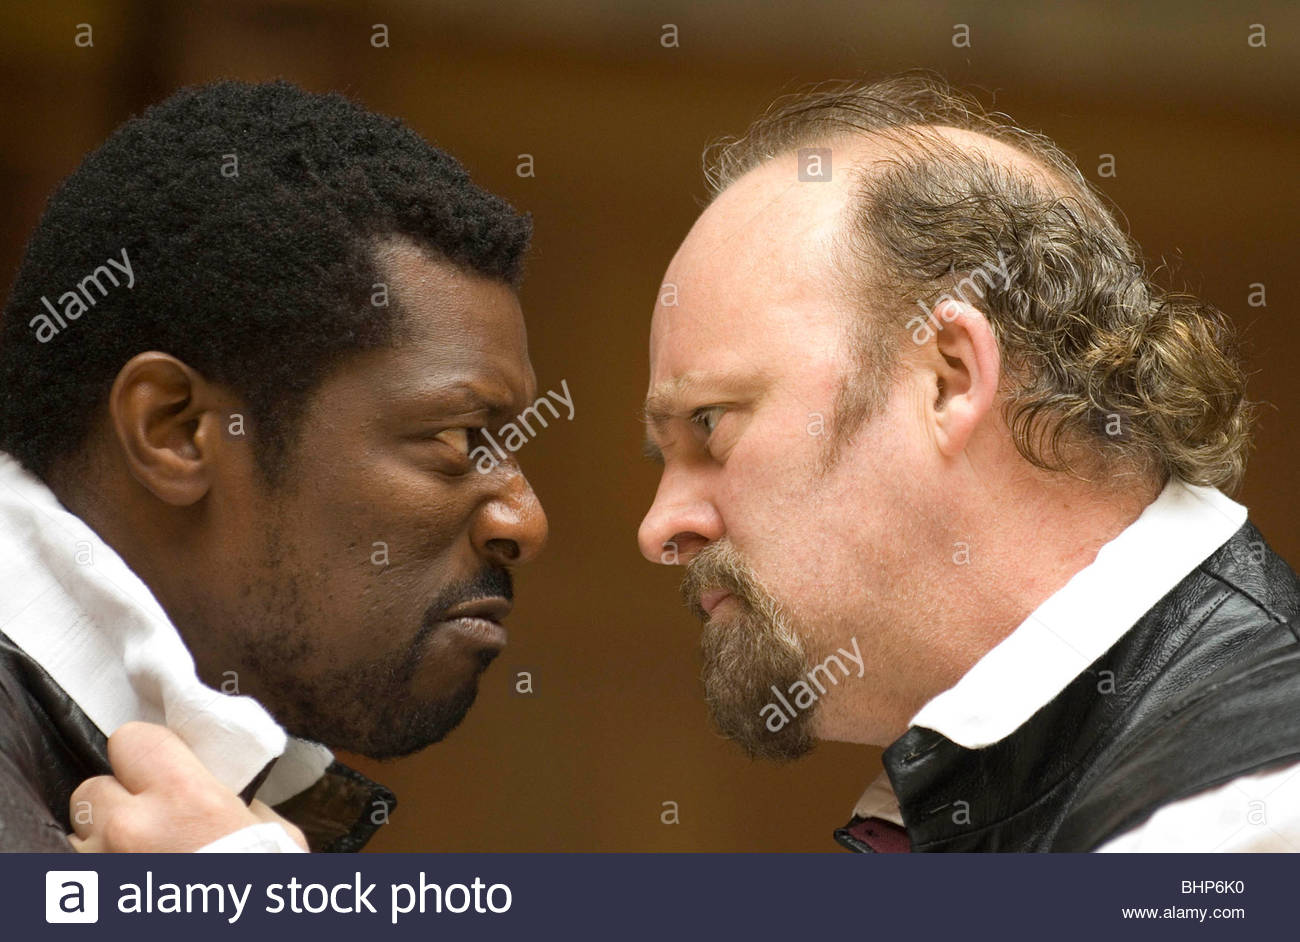 an examination of iago in william shakespeares play othello In cyprus, iago plots against othello, planting the seed of doubt about desdemona's fidelity and implicating cassio as her lover using roderigo, iago arranges a fight that ultimately results in cassio's demotion.